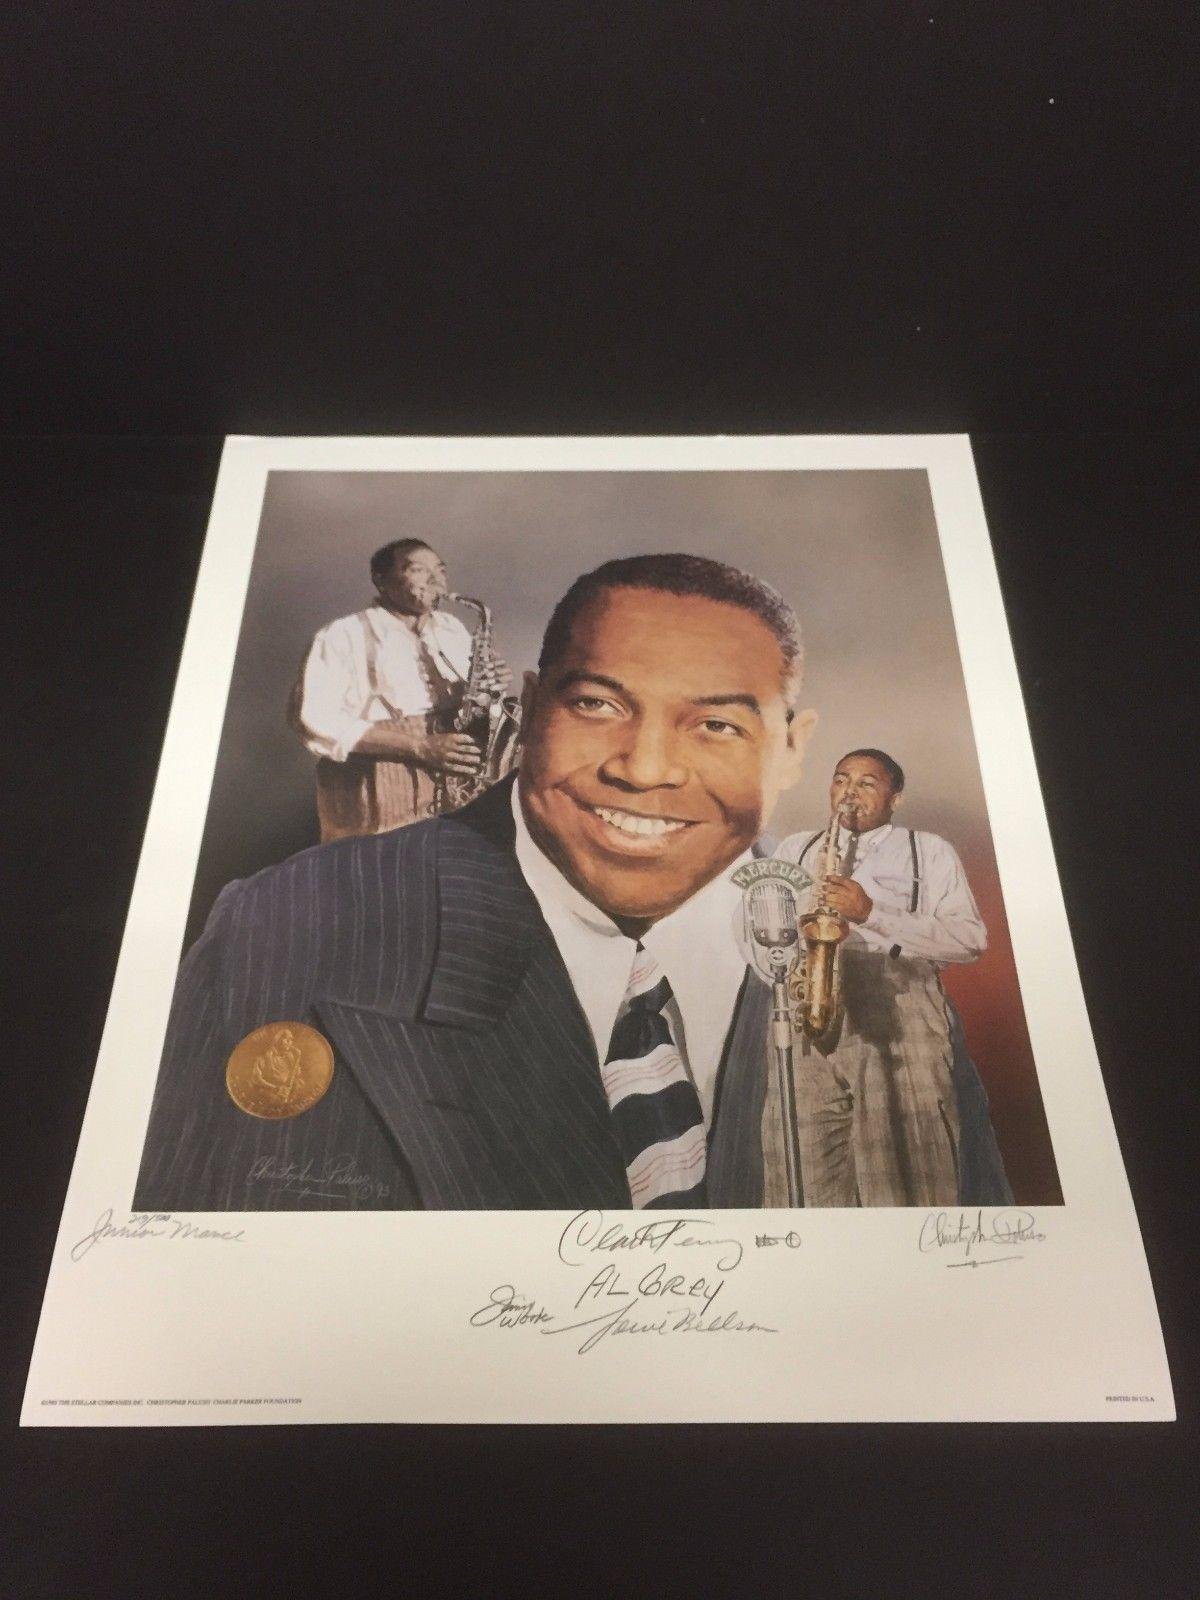 Jimmy Woode Louie Bellson Al Grey Junior Mance Clark Terry Jazz Signed Lithograp